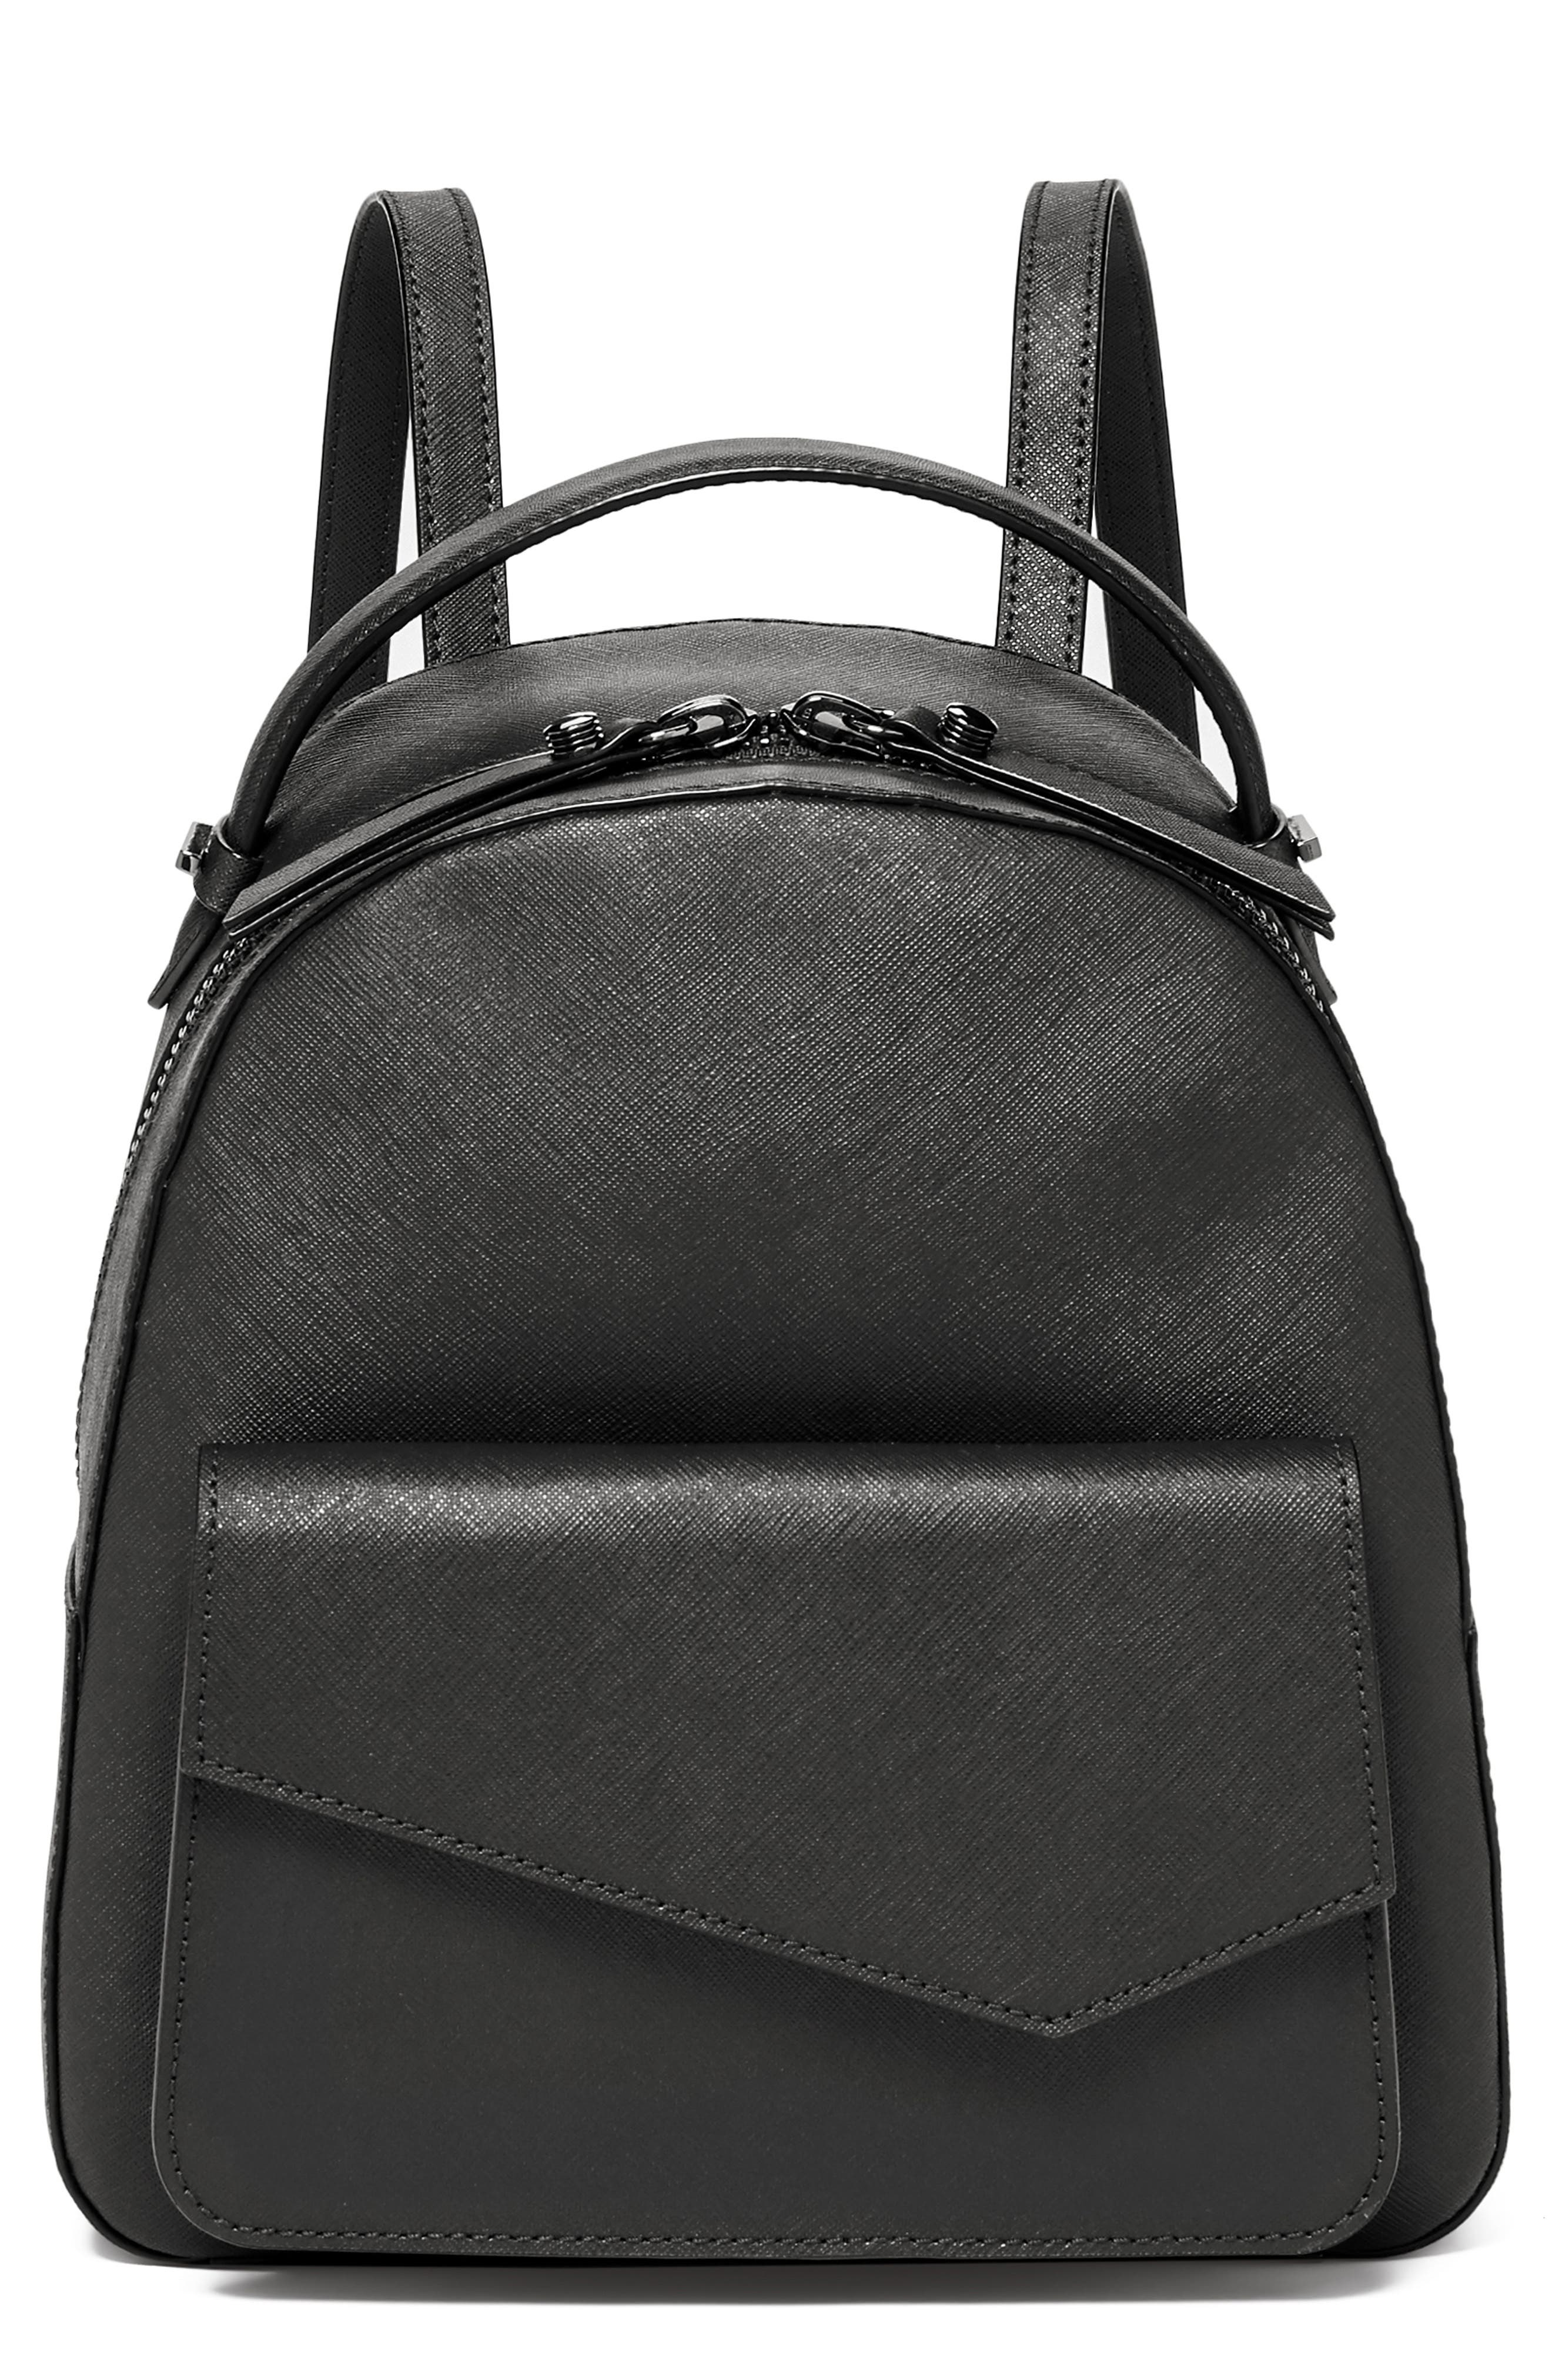 Cobble Hill Calfskin Leather Backpack,                             Main thumbnail 1, color,                             BLACK